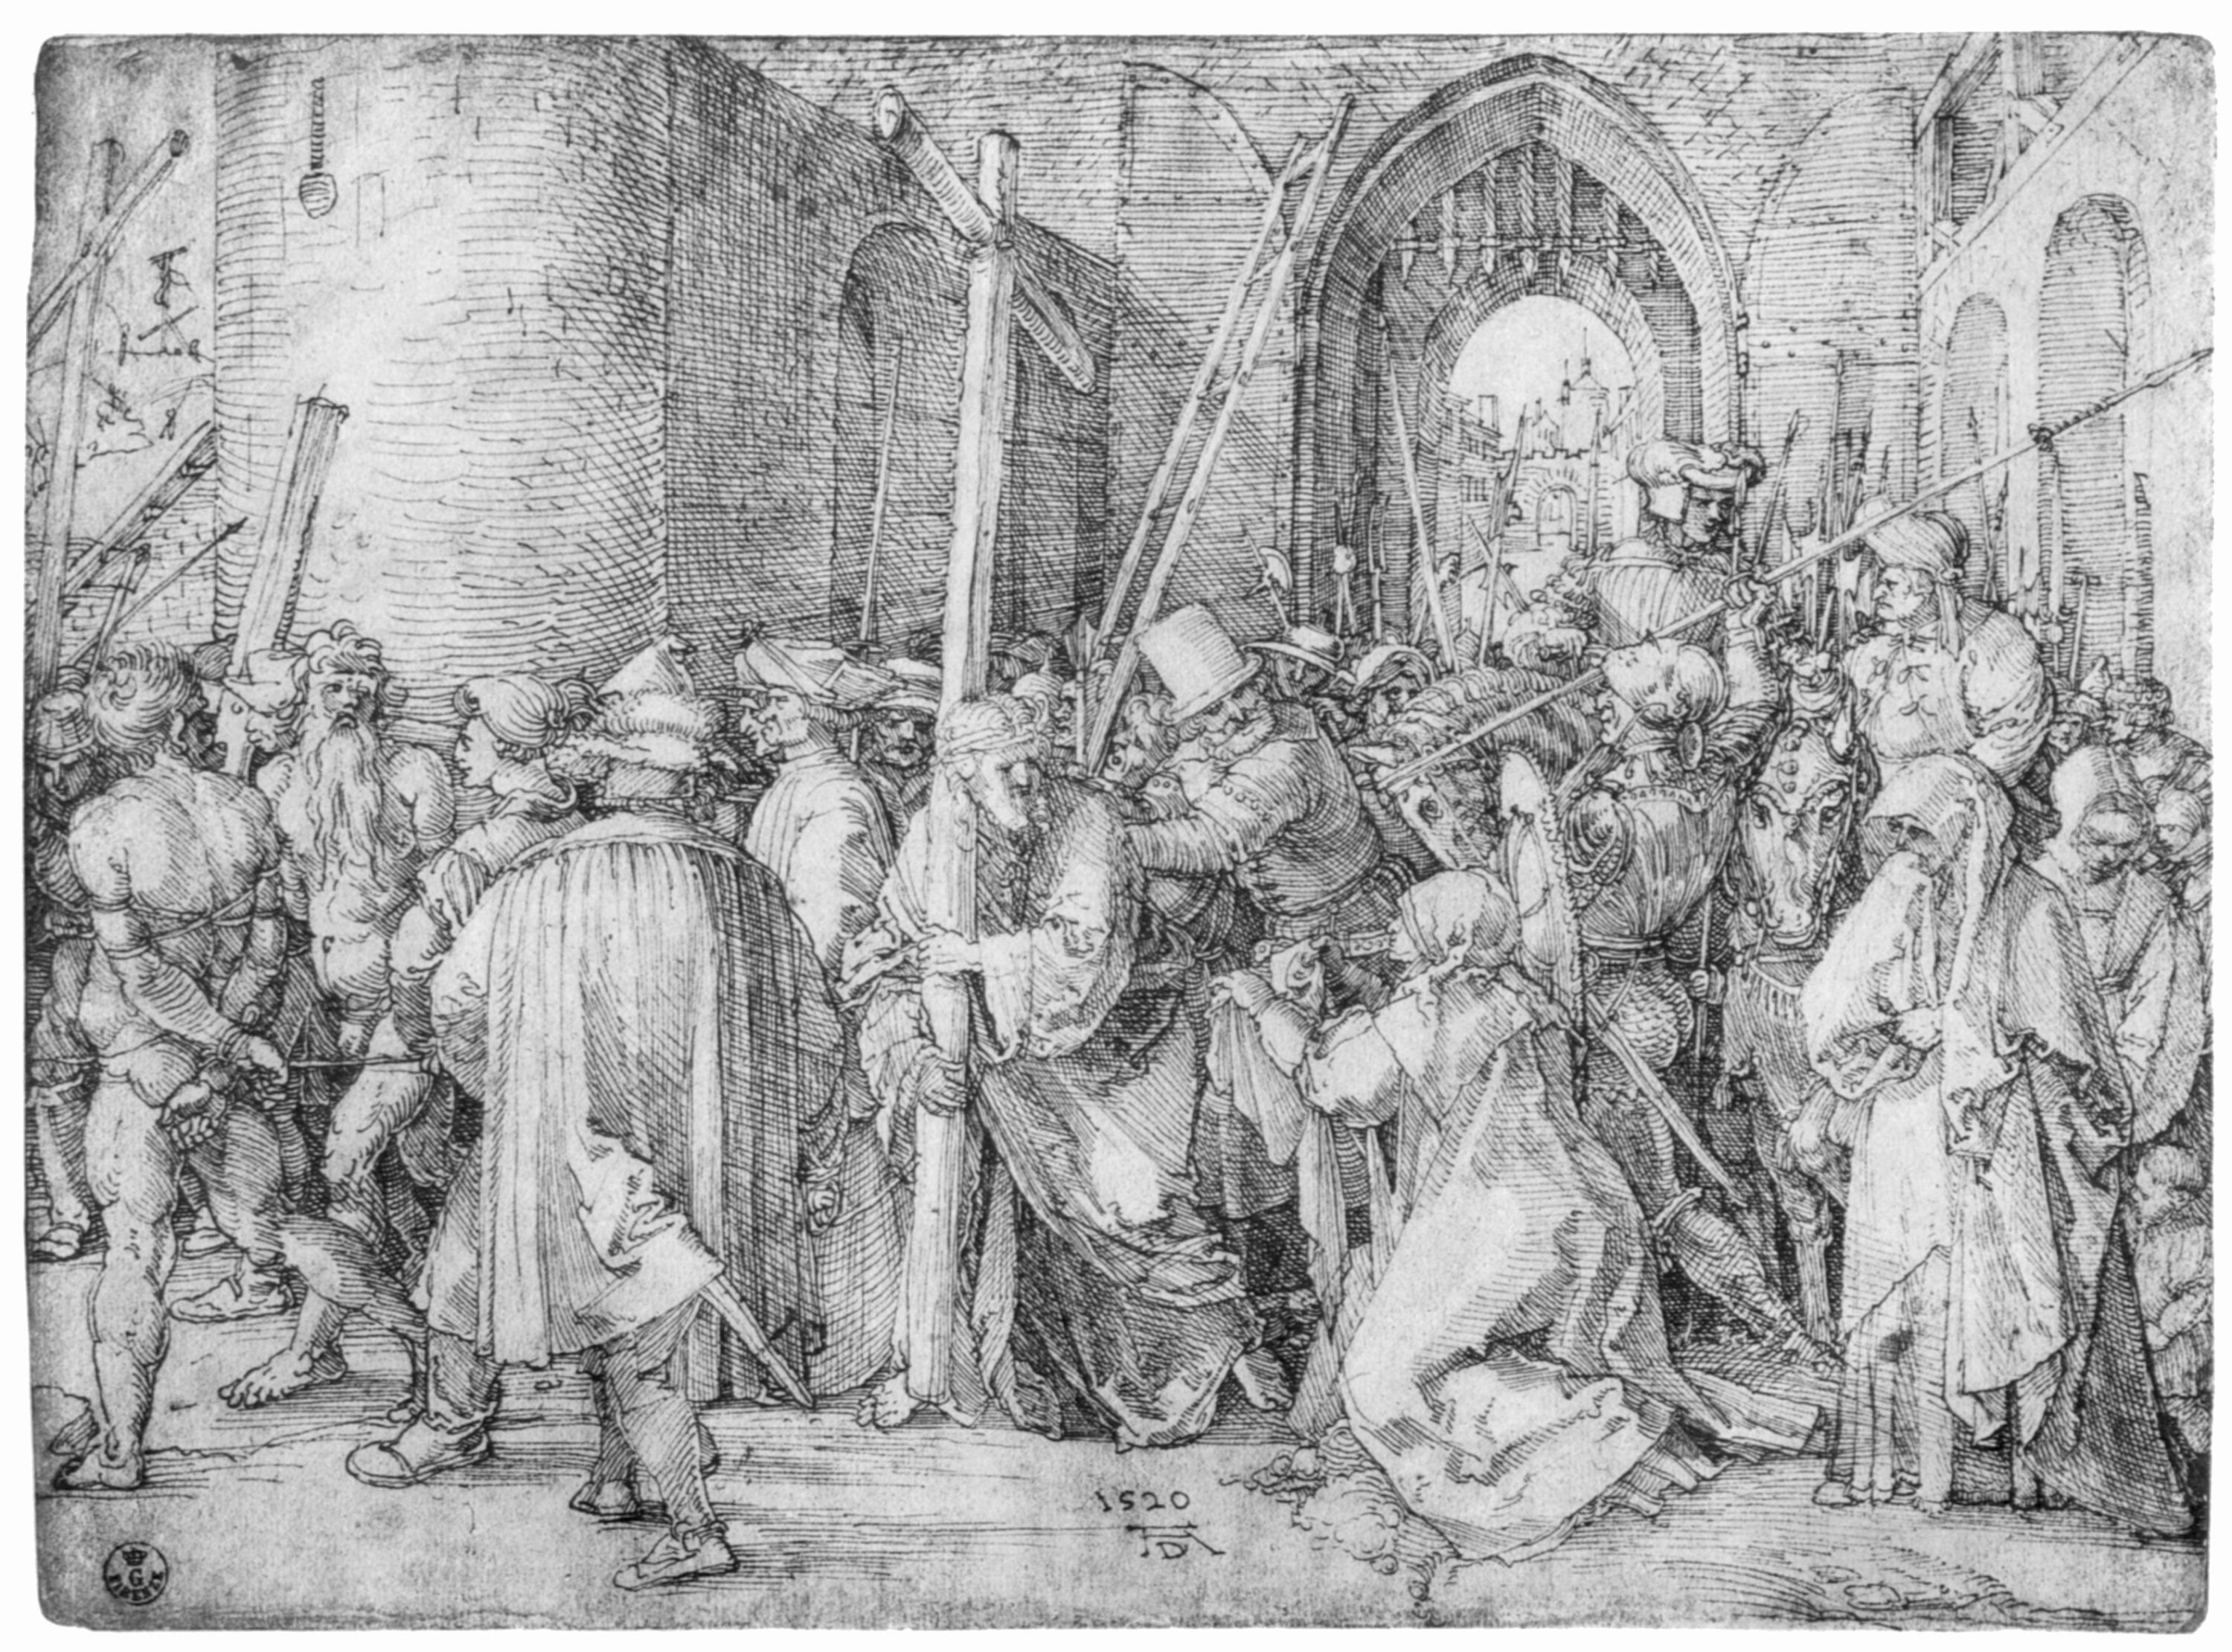 a biography of albrecht durer a painter printmaker and theorist of the german renaissance Paintings nationality: german birth place: nuremberg (mittelfranken, bavaria, germany) biography: albrecht durer was a german artist and theorist, commonly thought to be the impetus for the northern renaissance.